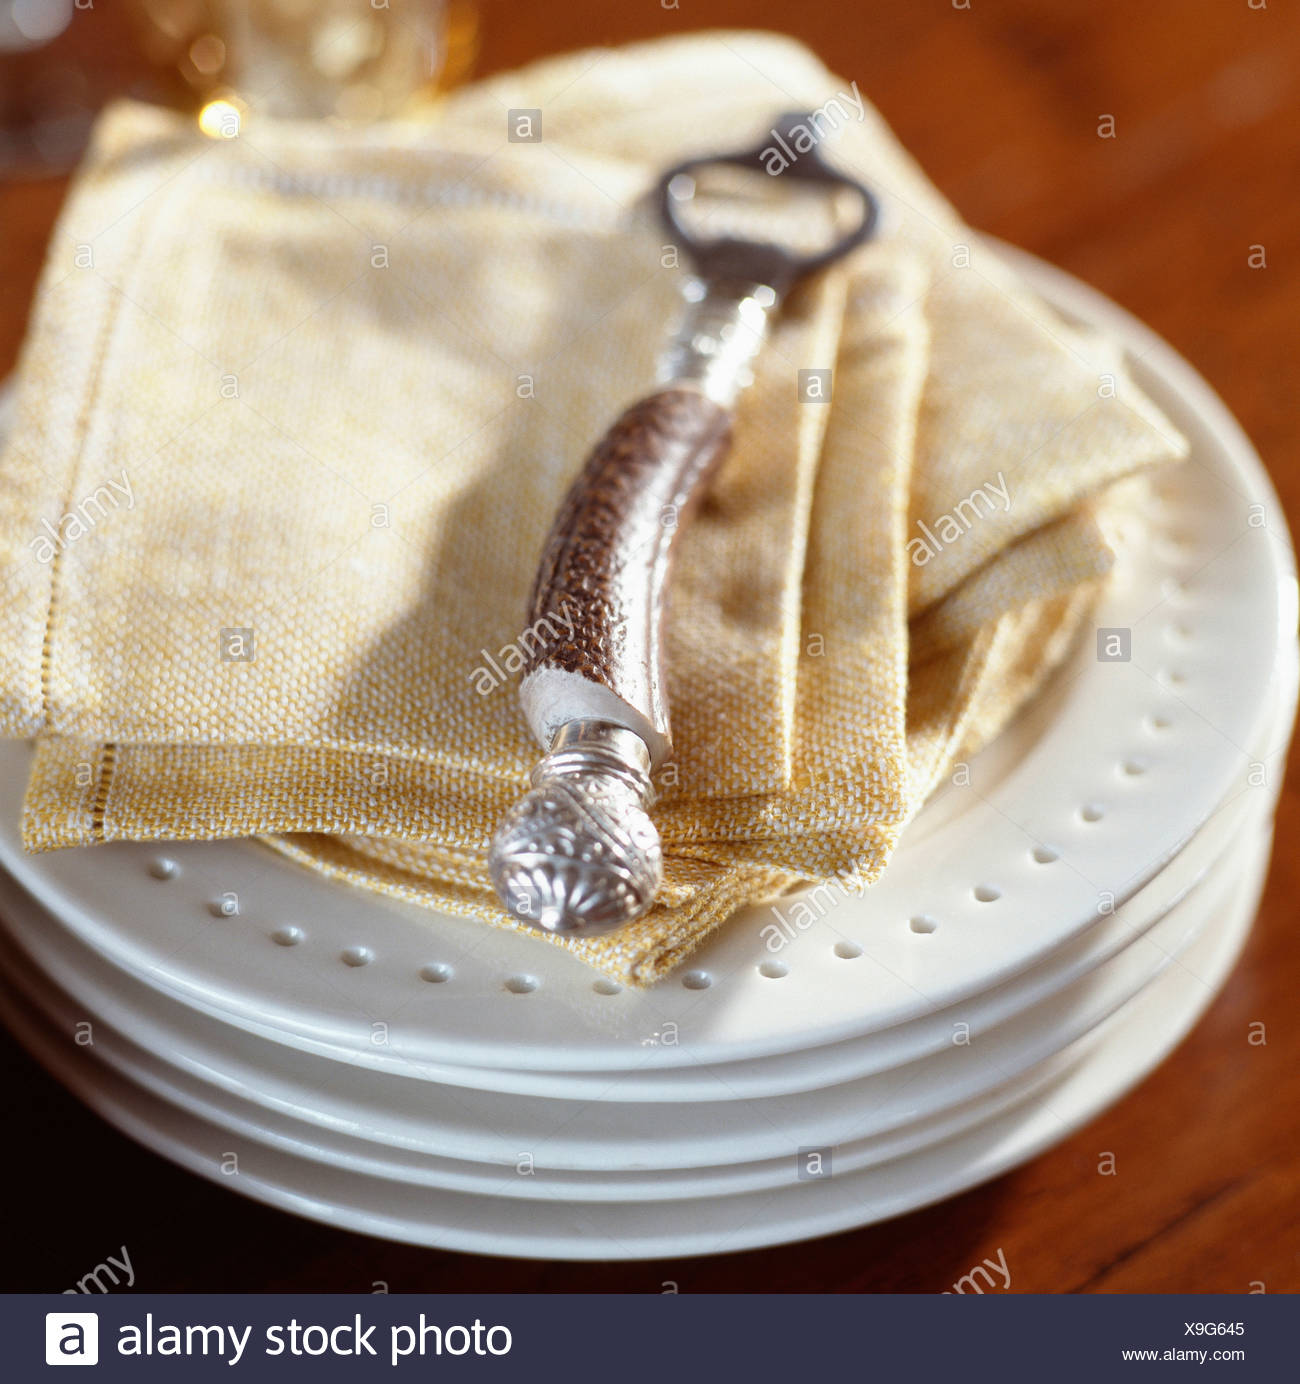 Table napkins and plates - Stock Image